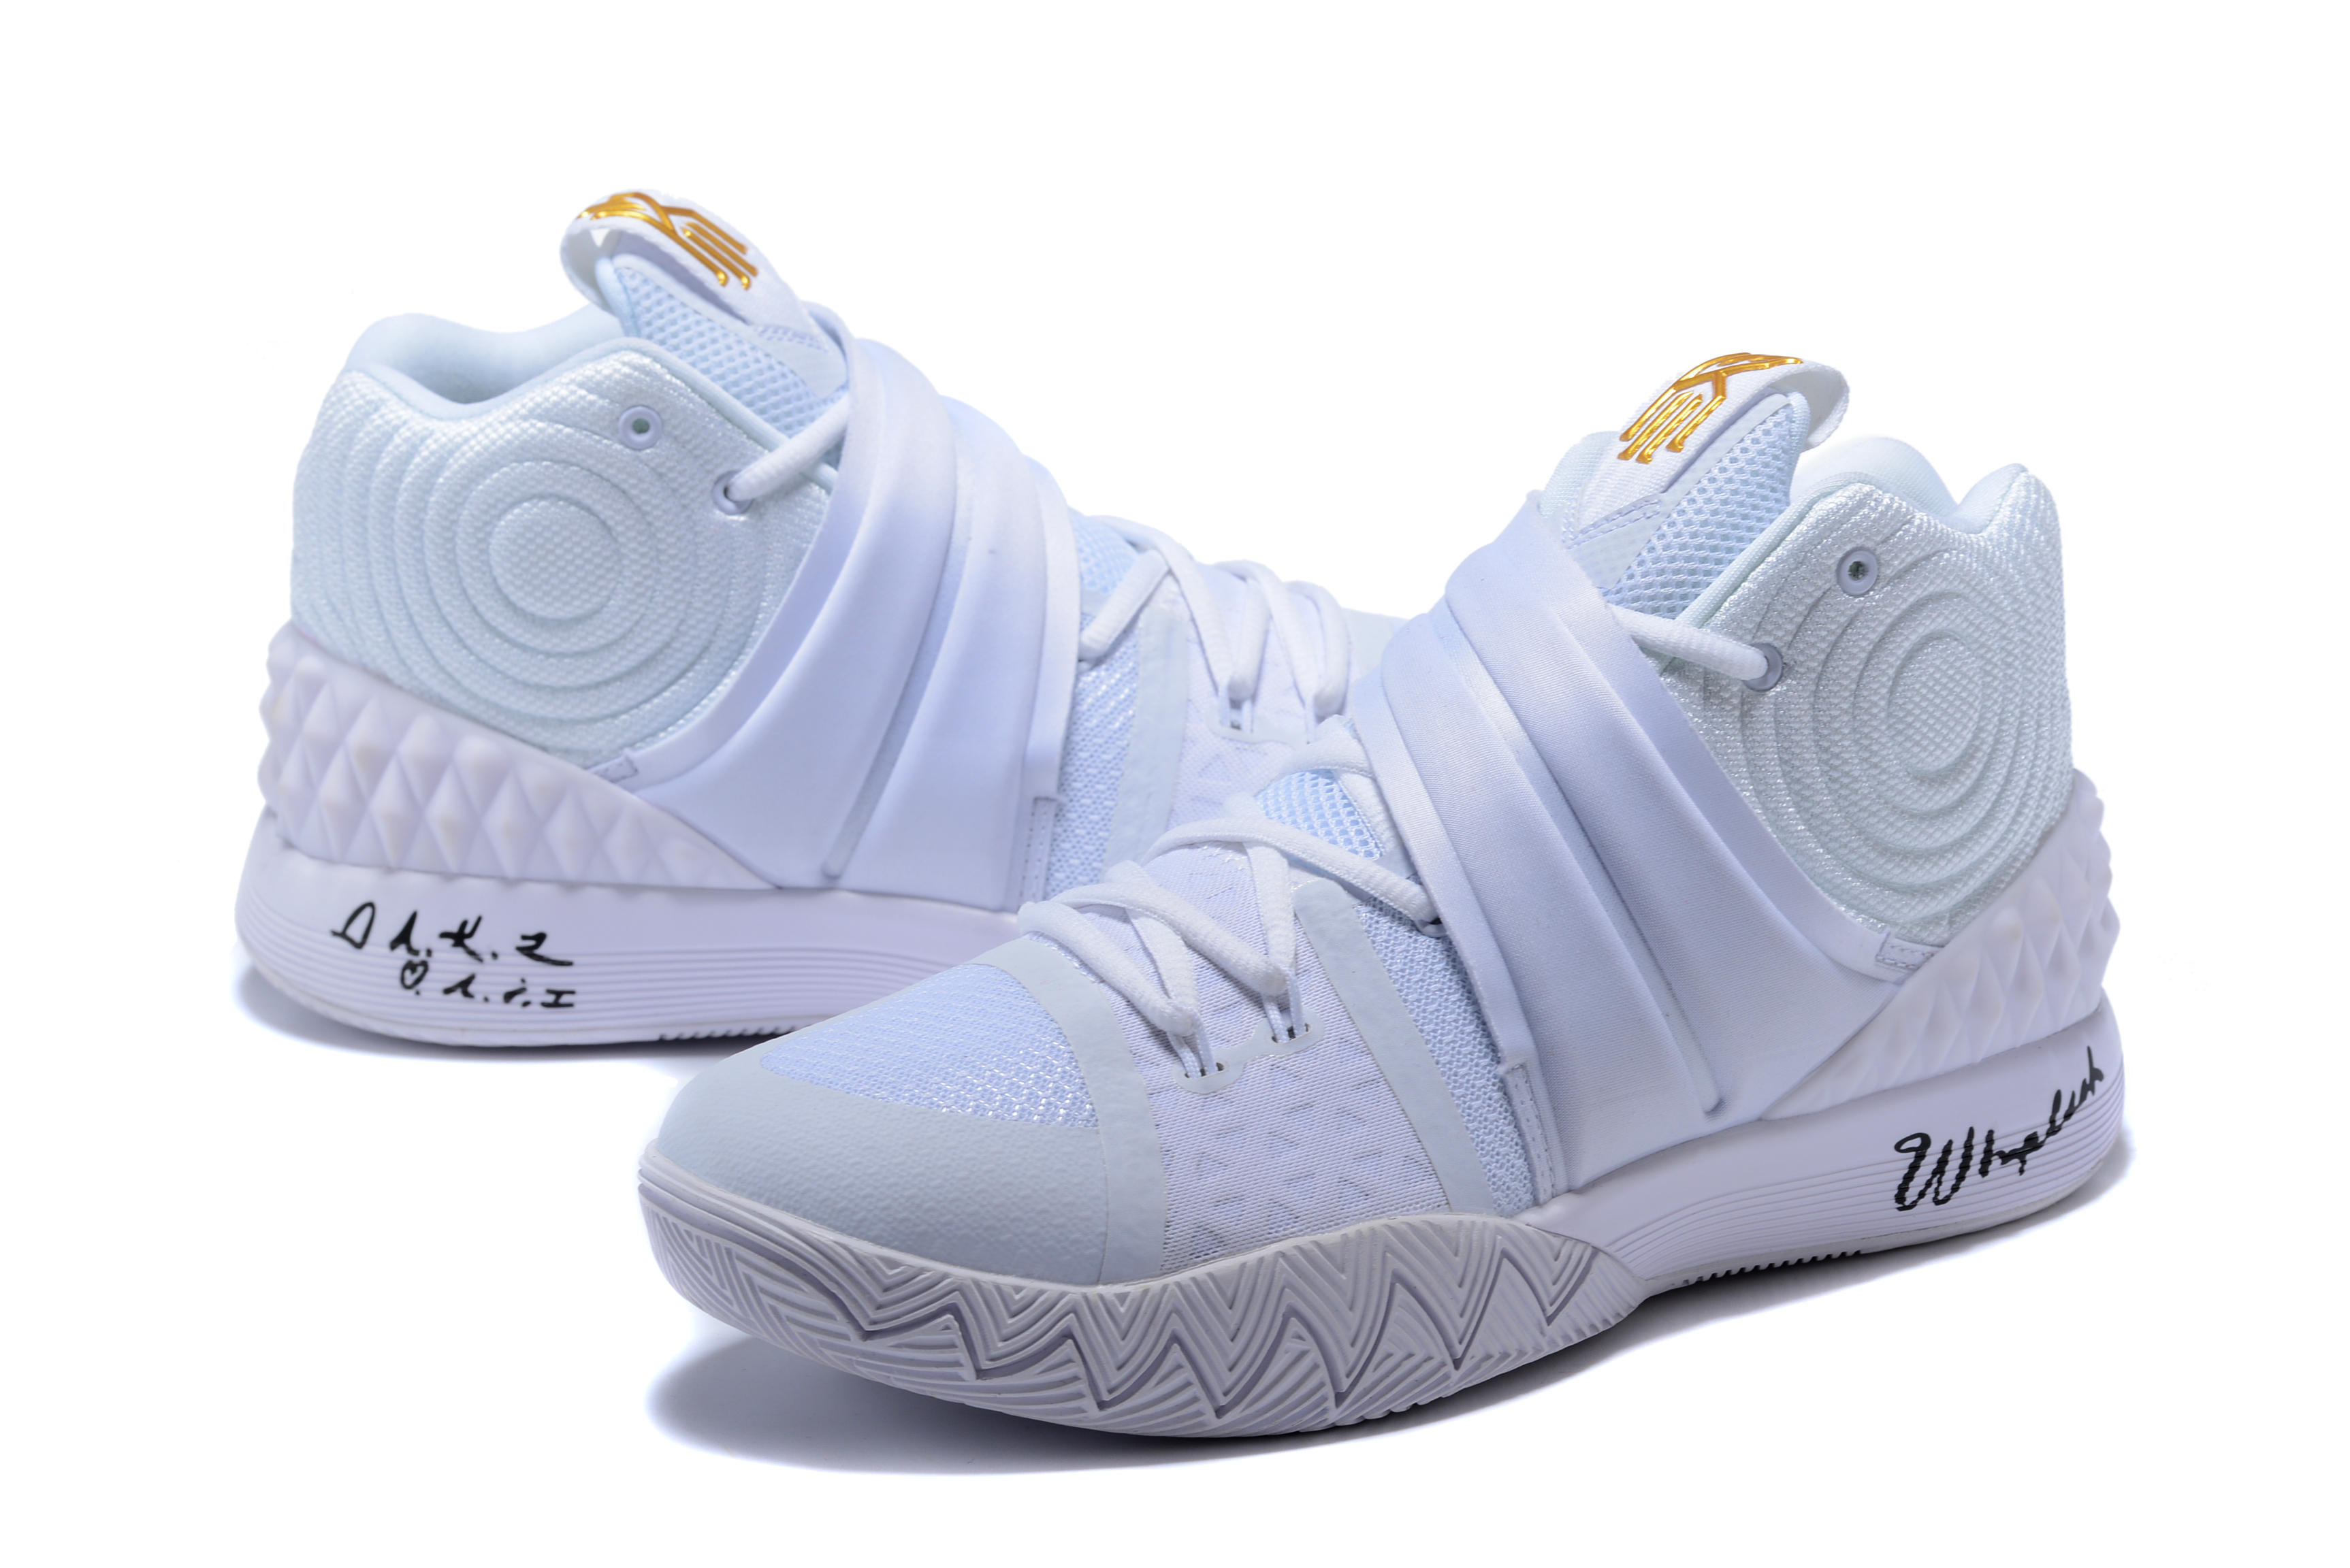 Nike Kyrie S1HYBRID White Gold Shoes